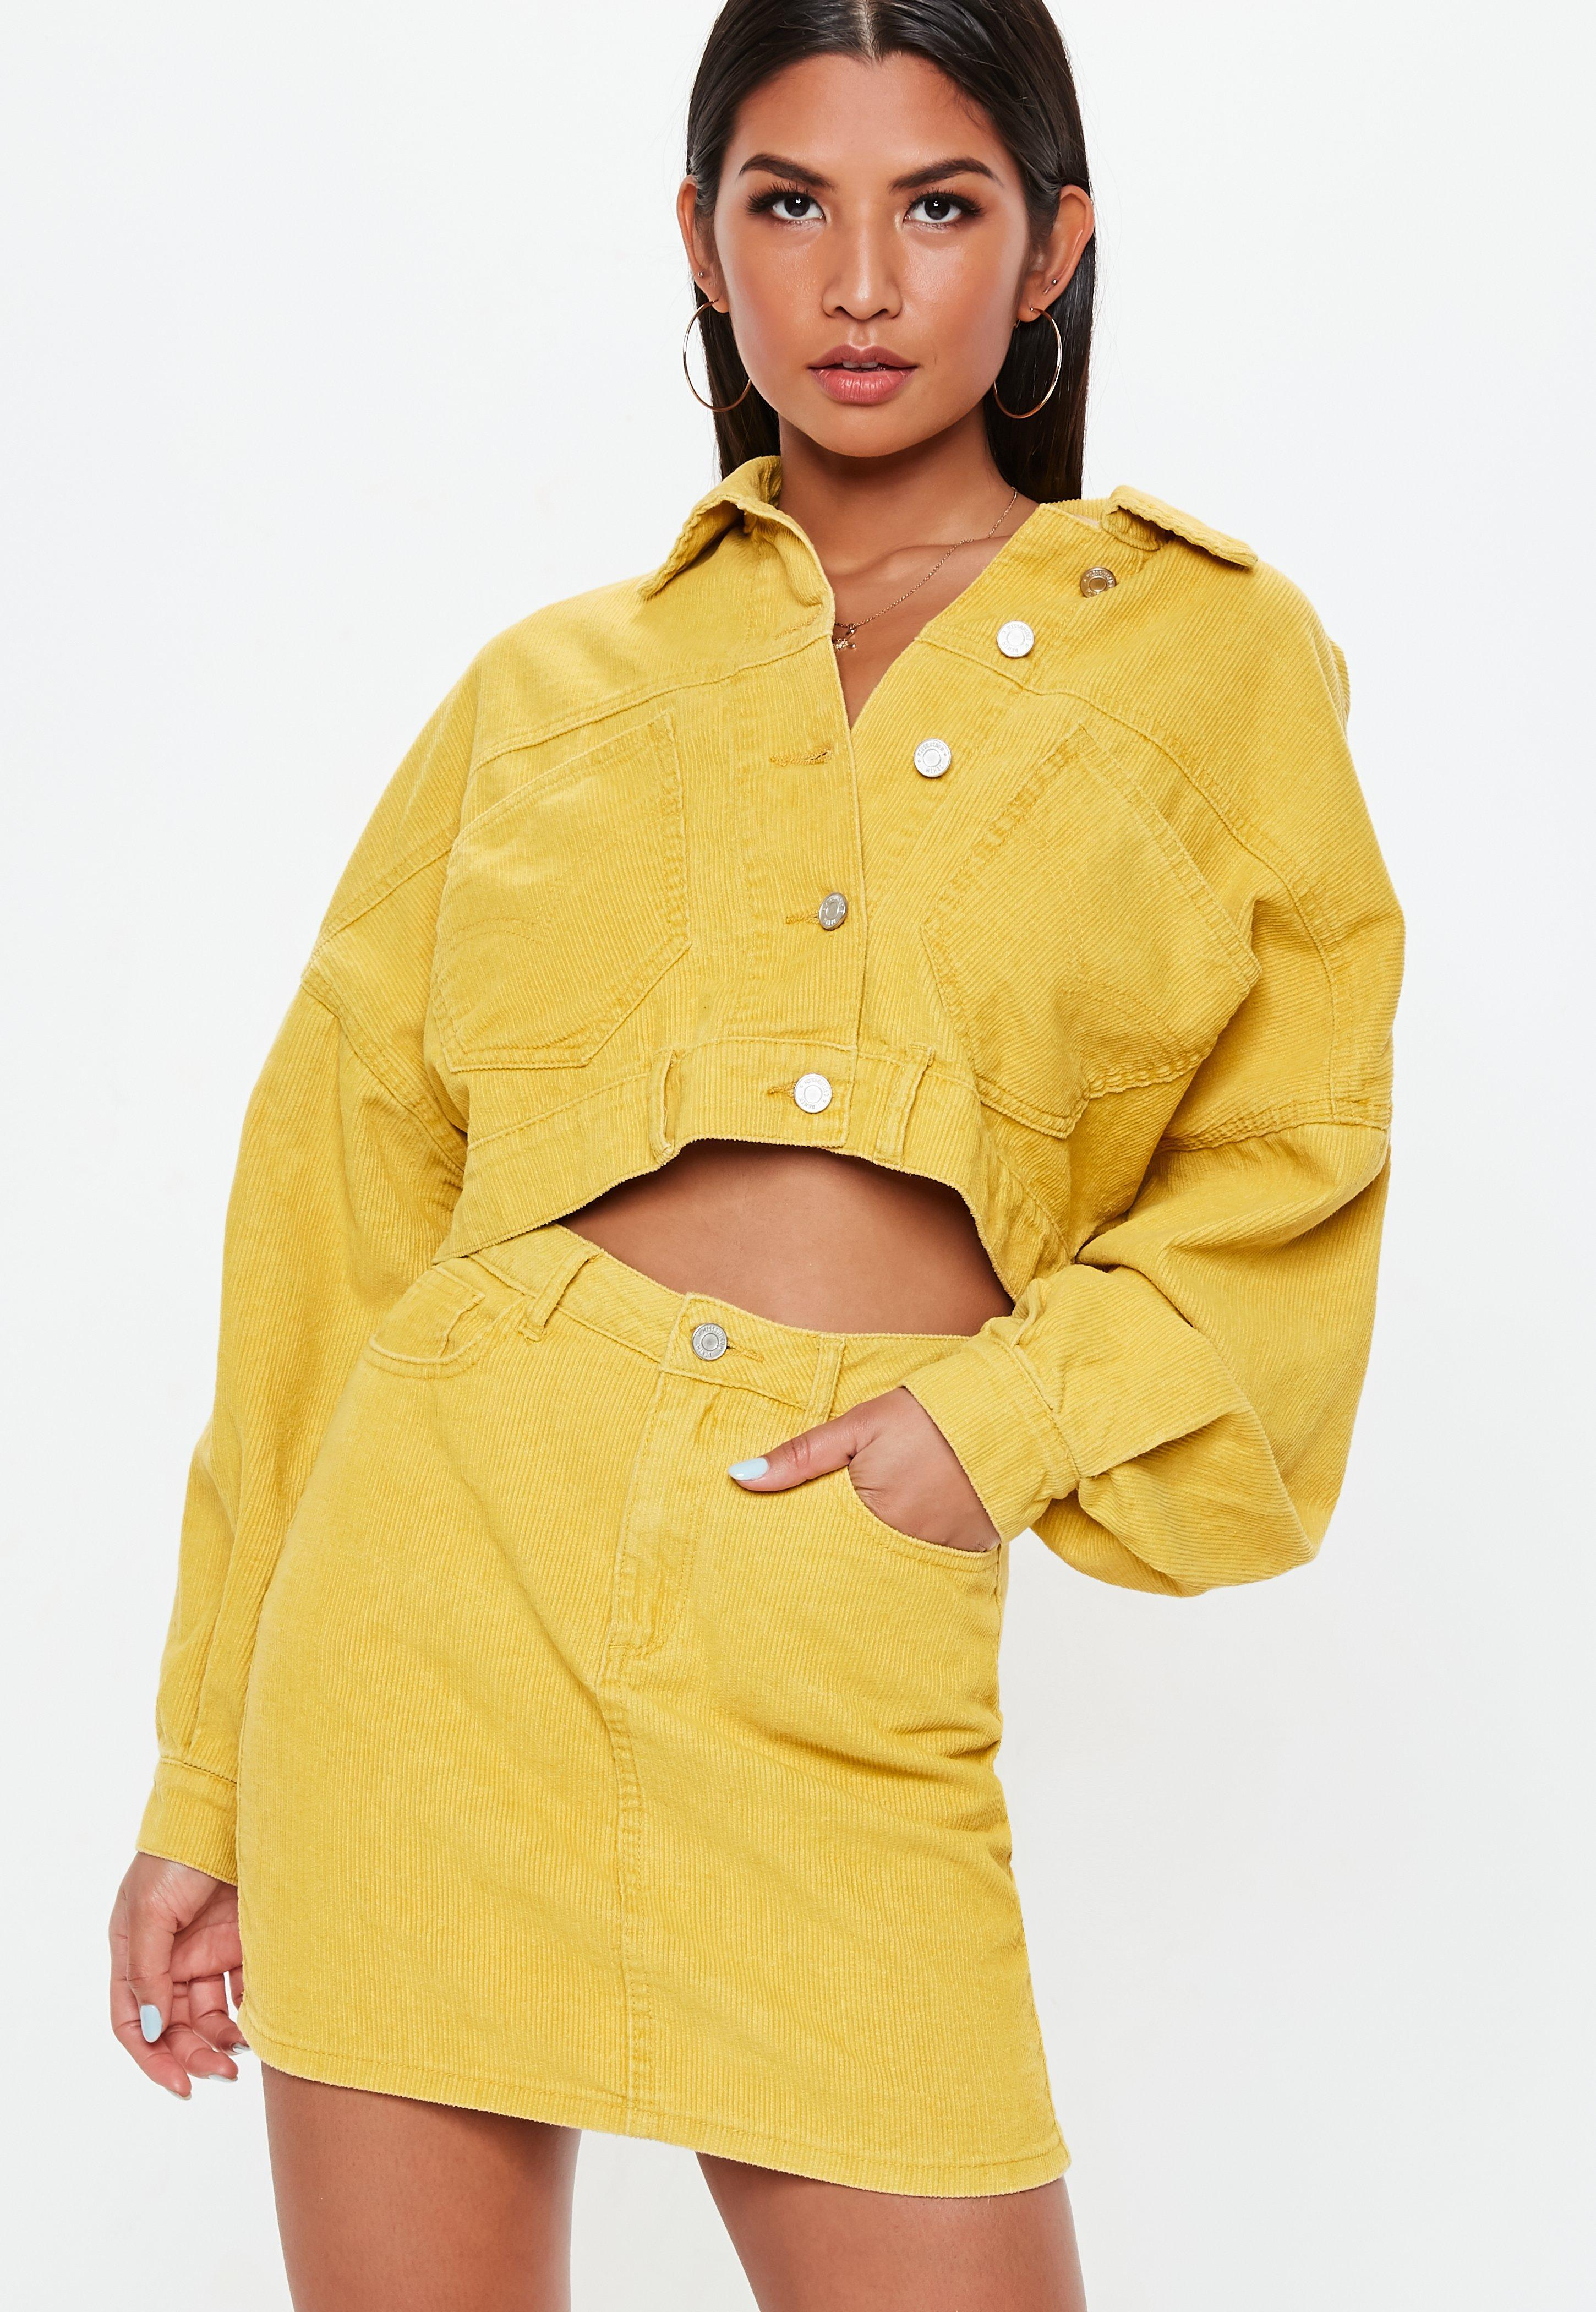 245b1cdd38 Lyst - Missguided Petite Mustard A Line Cord Mini Skirt in Yellow ...